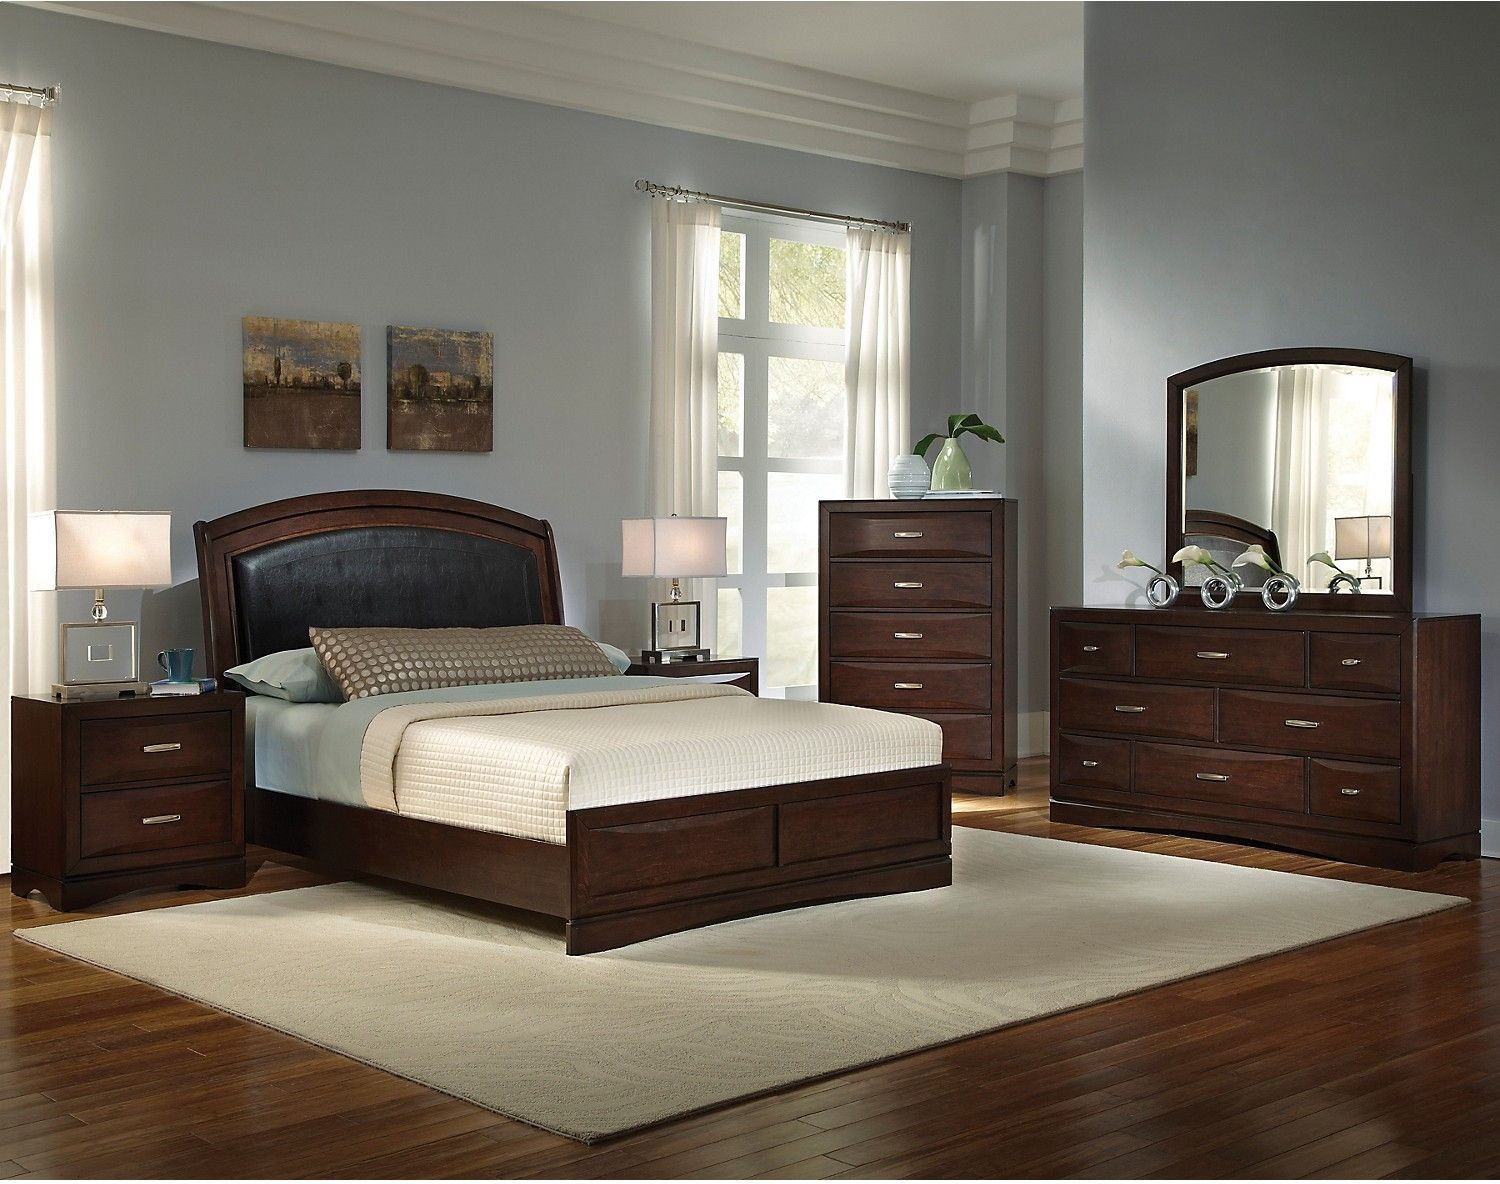 Room Bed Sets living room picture bedroom design